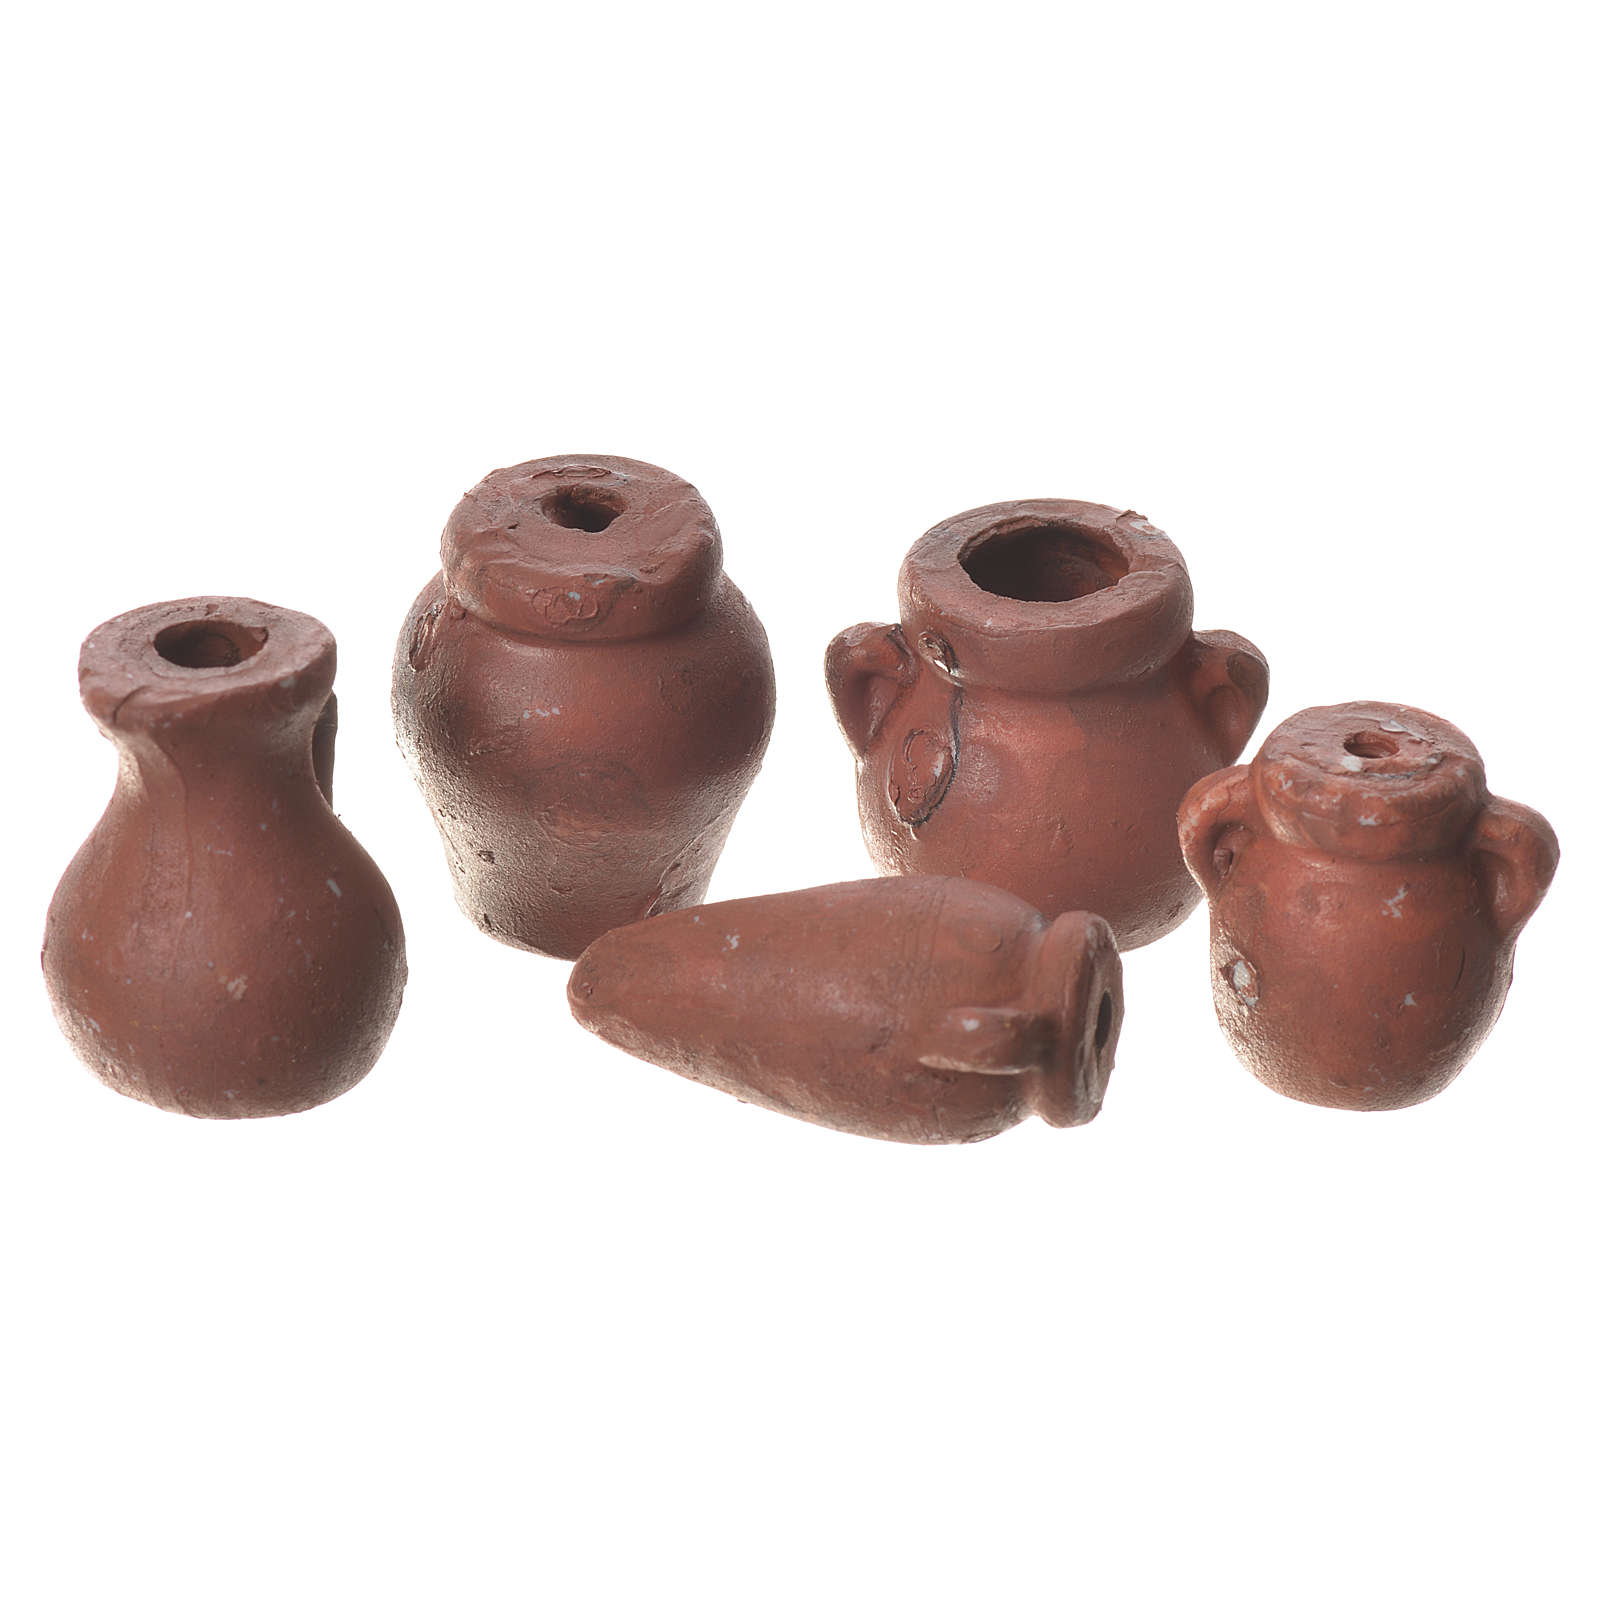 Anfore assortite presepe 5 pz terracotta 4